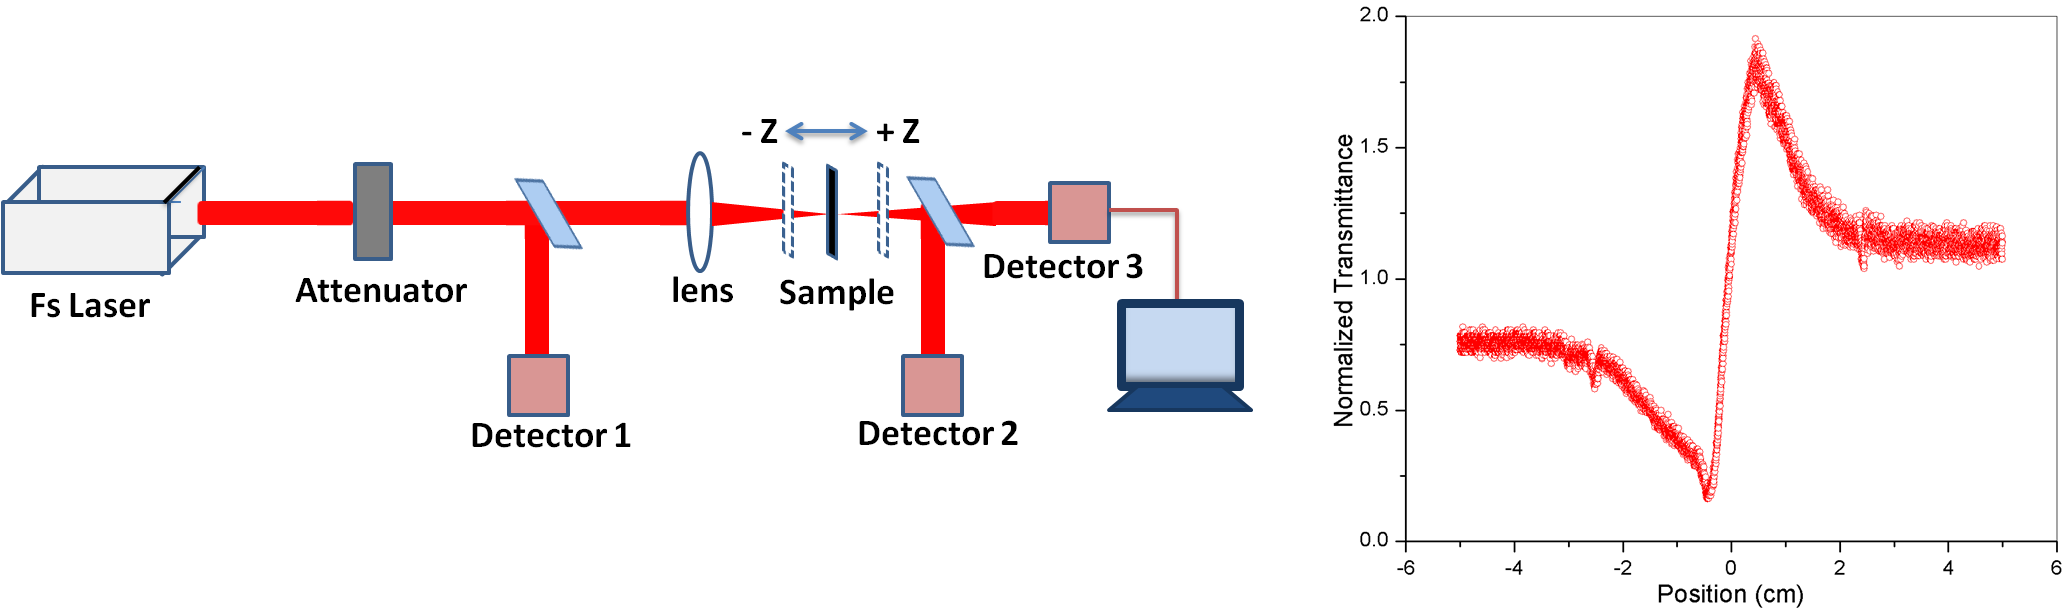 Abhijeet Kumar Amplifiers And Lockin Simplified Schematic All Figure 1 Z Scan Set Up Left Obtained Curve For Cs2 With Femtosecond Pulsed Laser Beam At Wavelength 780nm 650mw Power